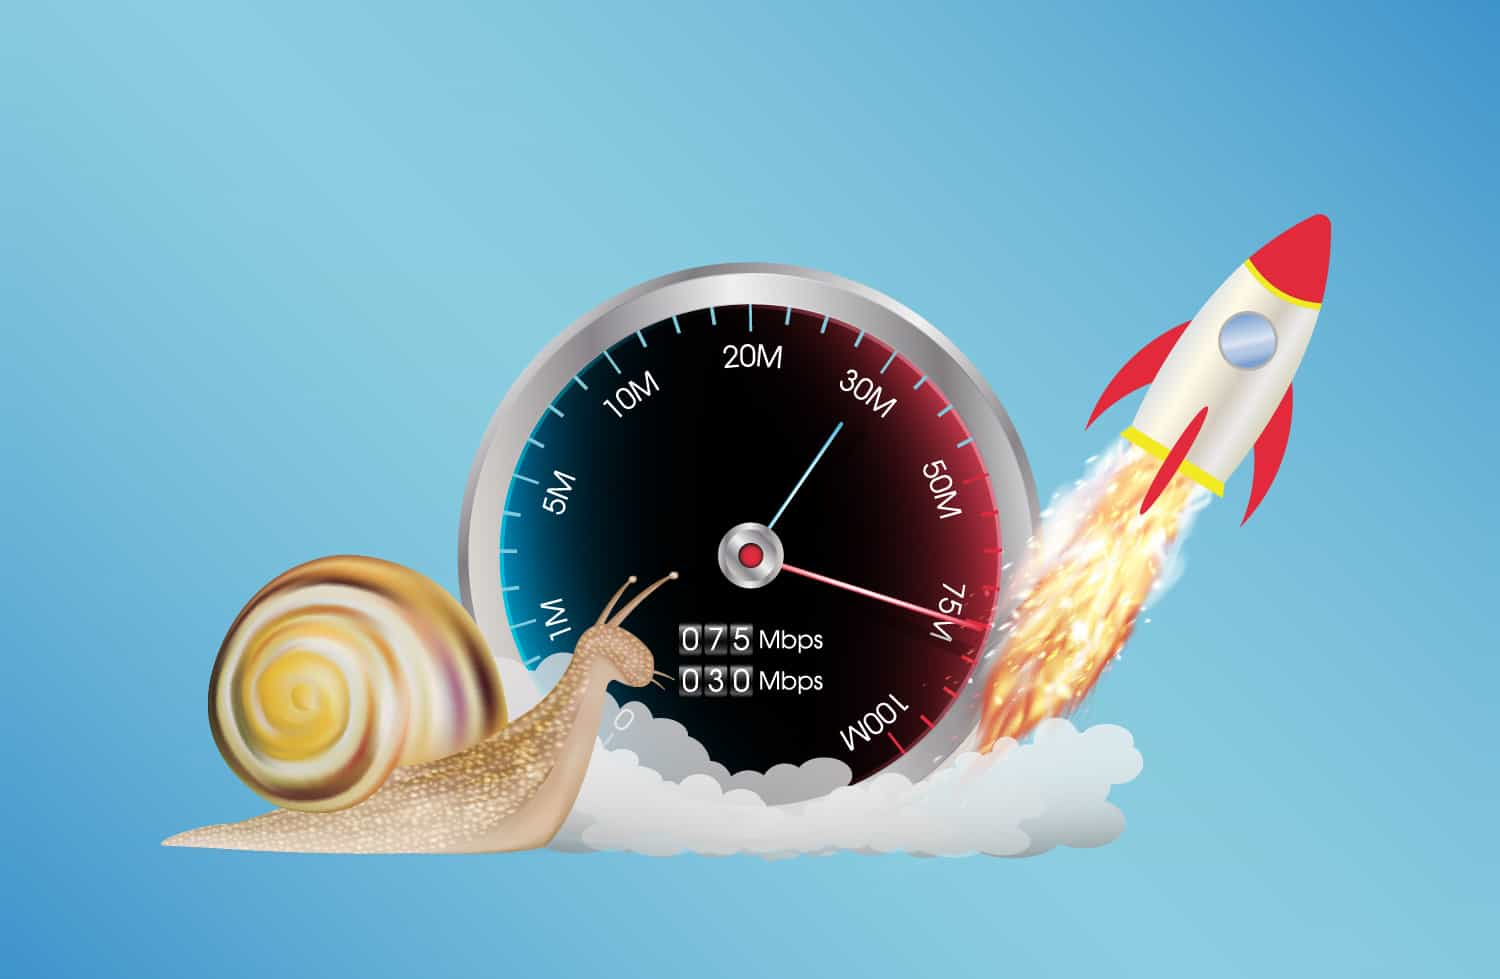 Illustration of a speedometer with a snail at 0 and a rocket at max speed